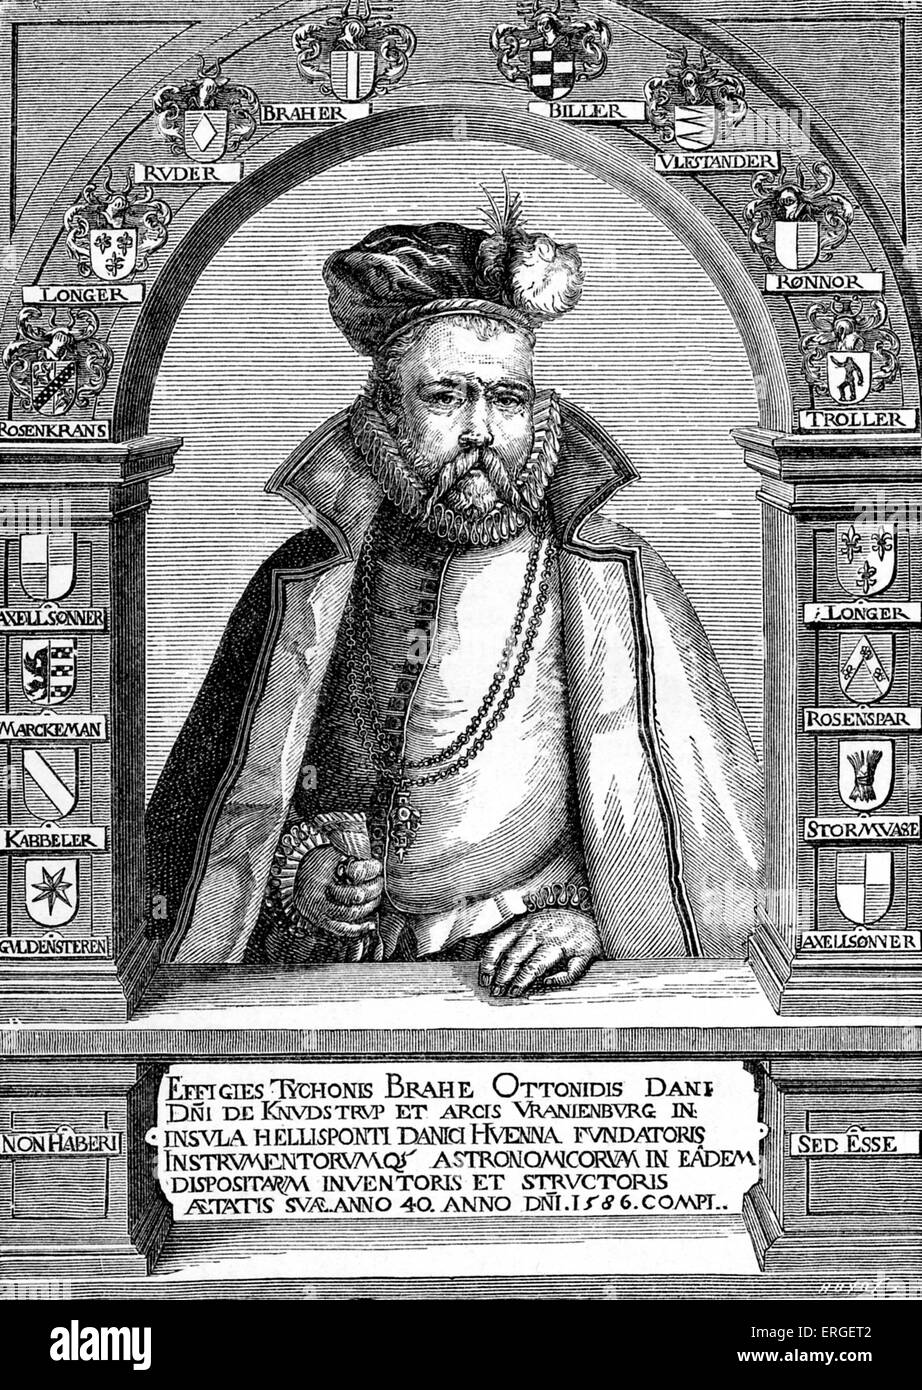 Tycho Brahe - portrait from engraving by Gheyn, late 16th century. Born Tyge Ottesen Brahe, Danish nobleman known - Stock Image